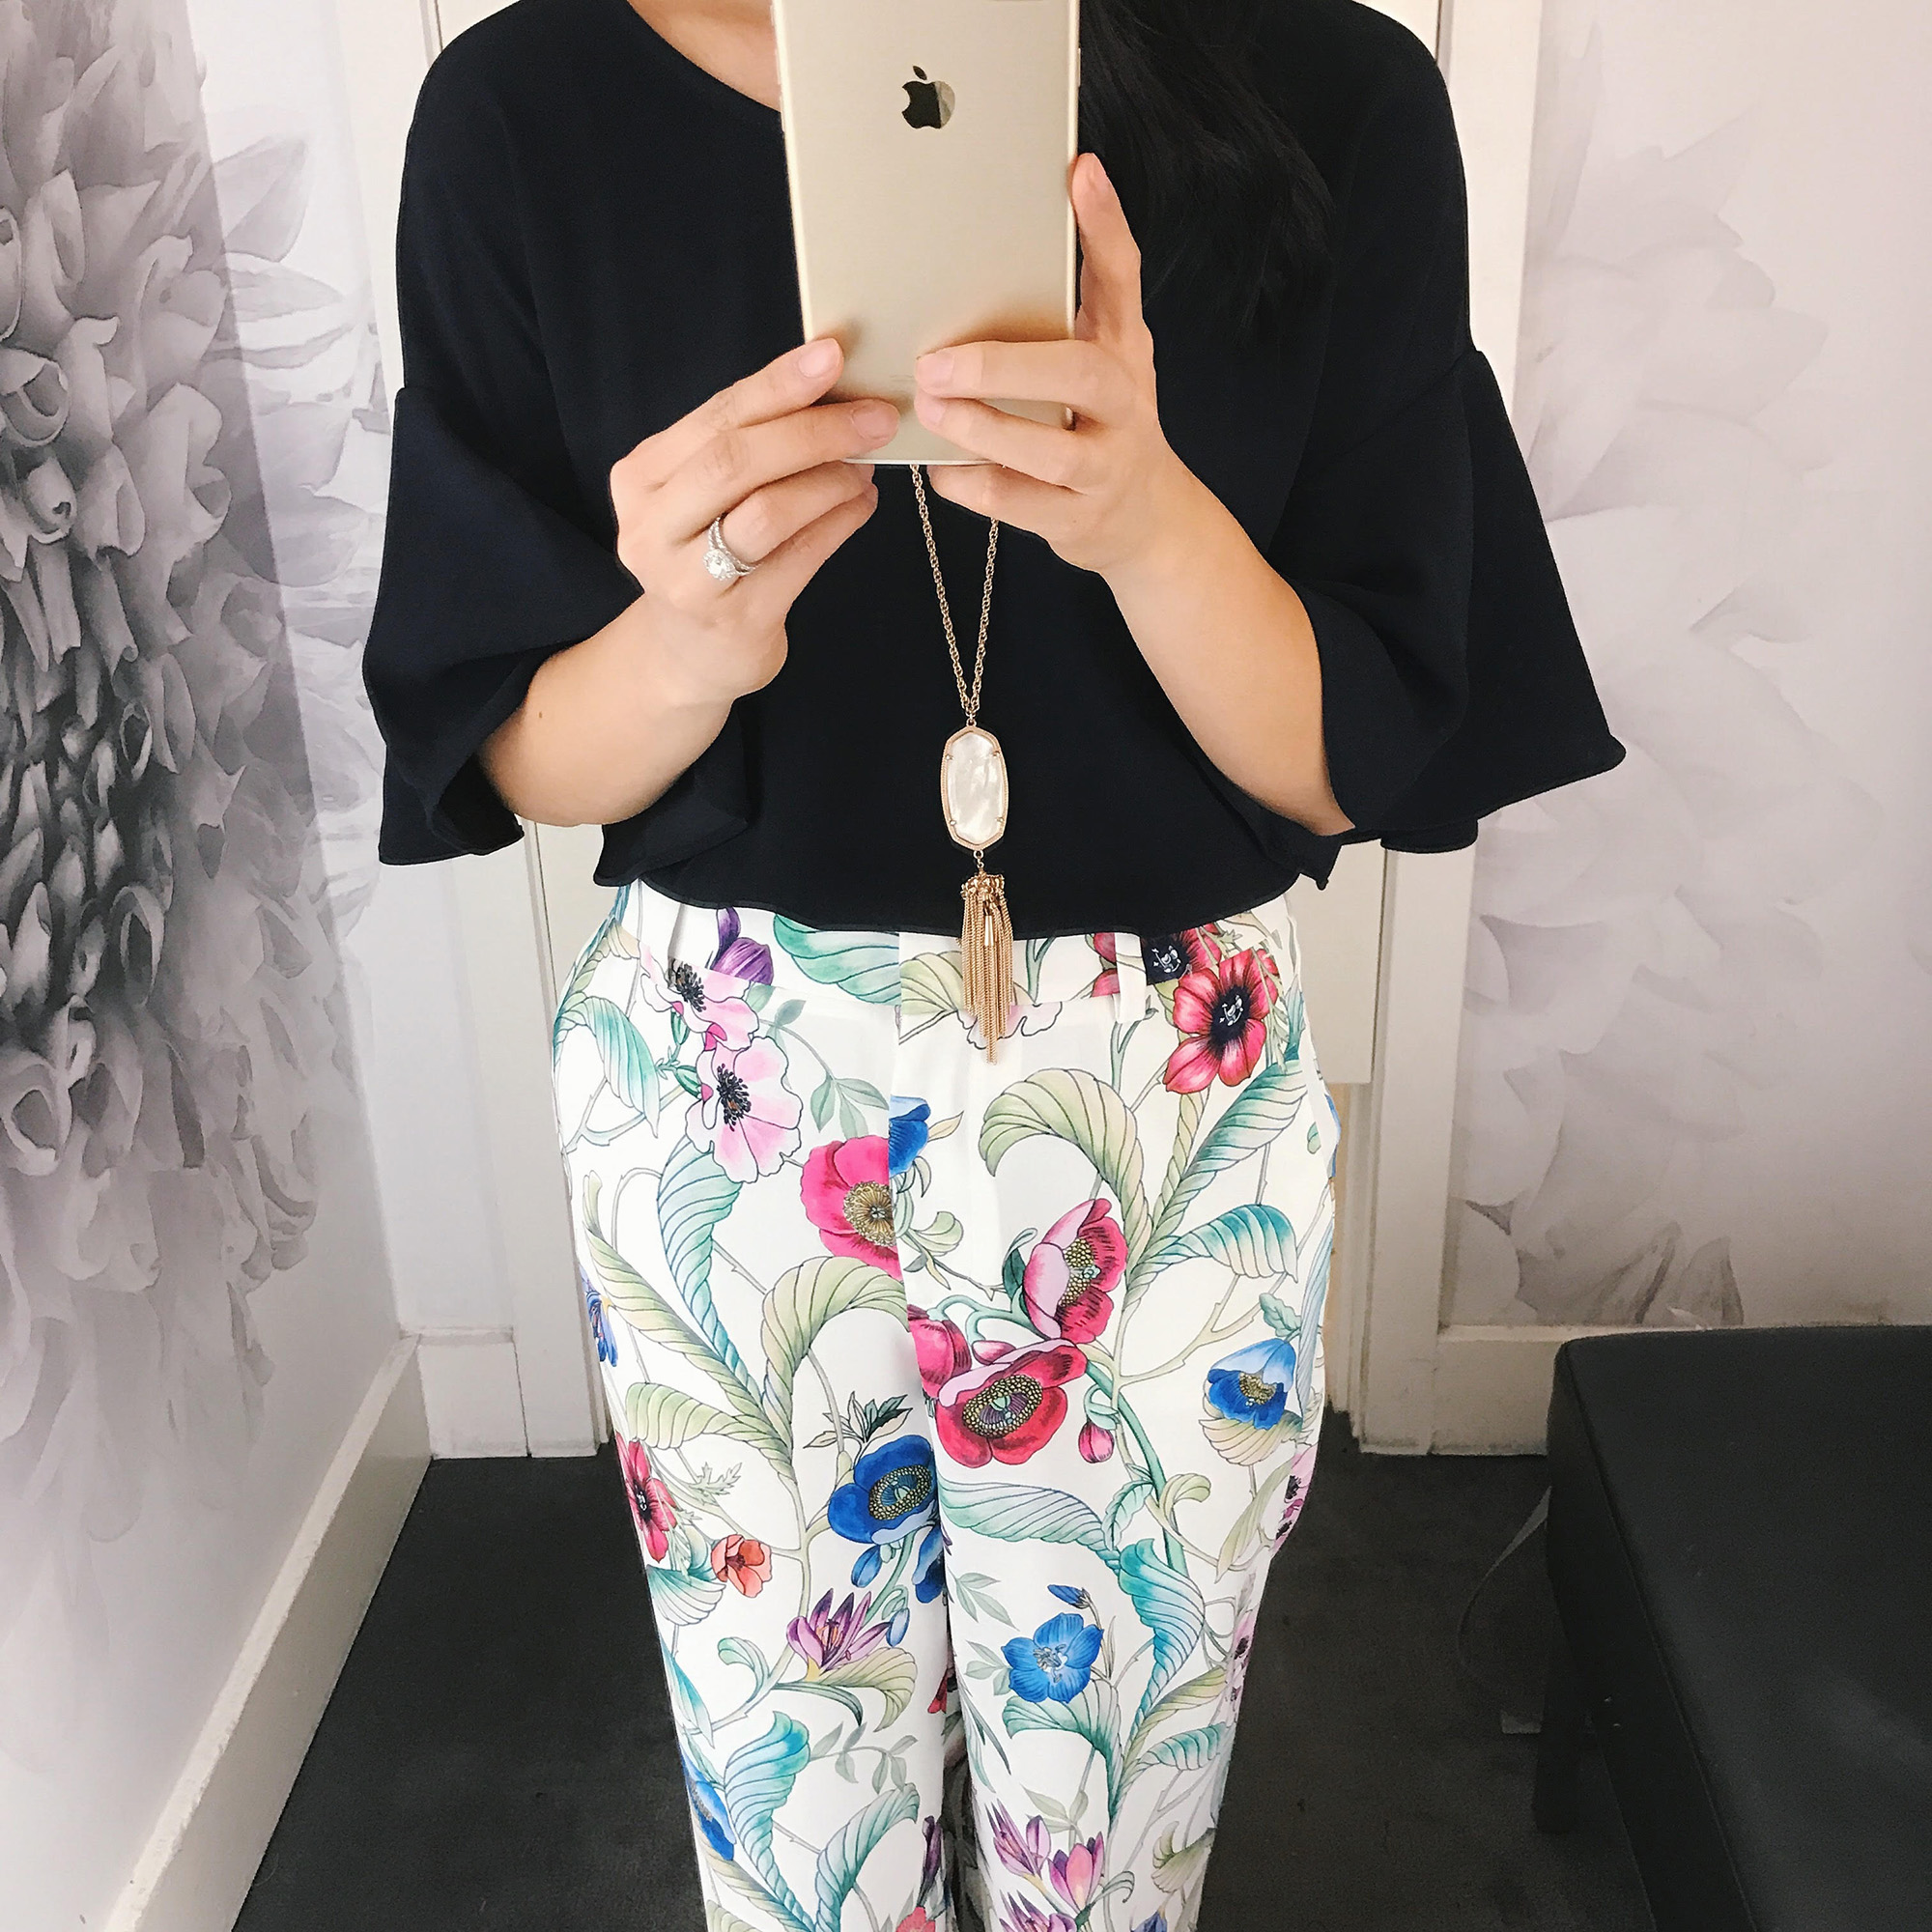 Skirt The Rules / Ann Taylor Fitting Room Review